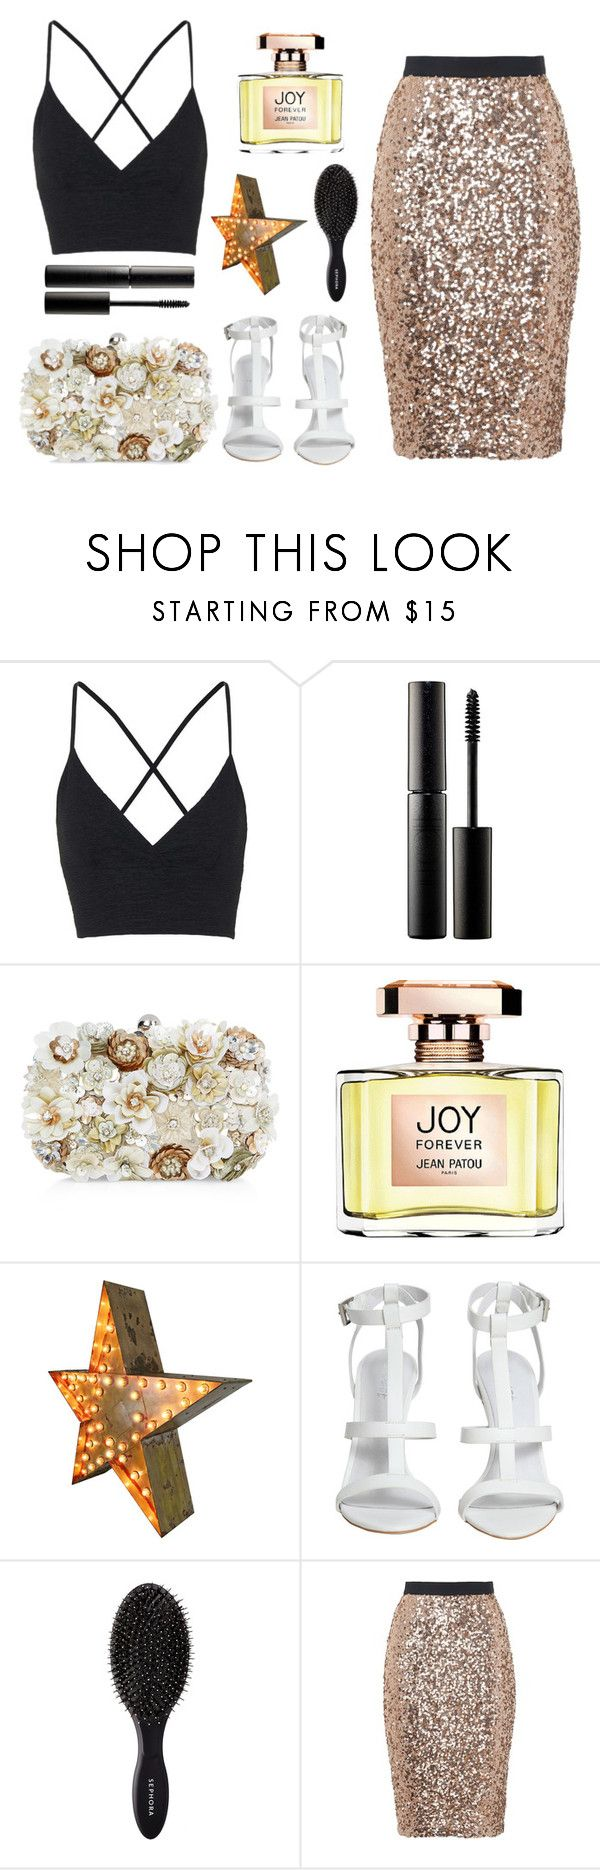 """""""Dreams Tatiana"""" by laska242007 ❤ liked on Polyvore featuring Topshop, Surratt, Accessorize, Jean Patou, Sephora Collection and French Connection"""